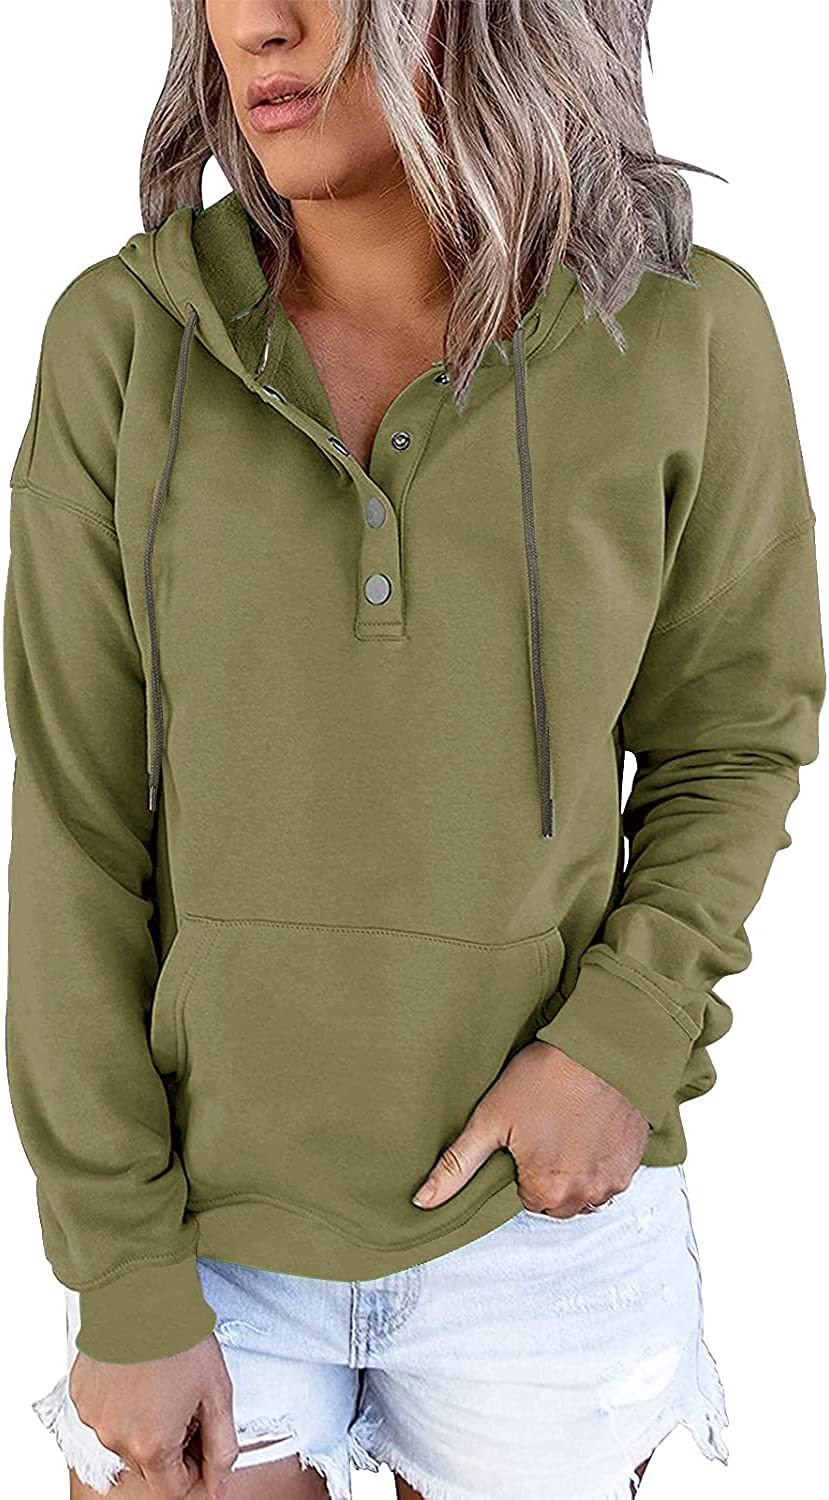 Women Hoodies Long Sleeve Pullover Botton Up Tunic Tops Casual Drawstring Lightweight Sweatshirts With Pockets